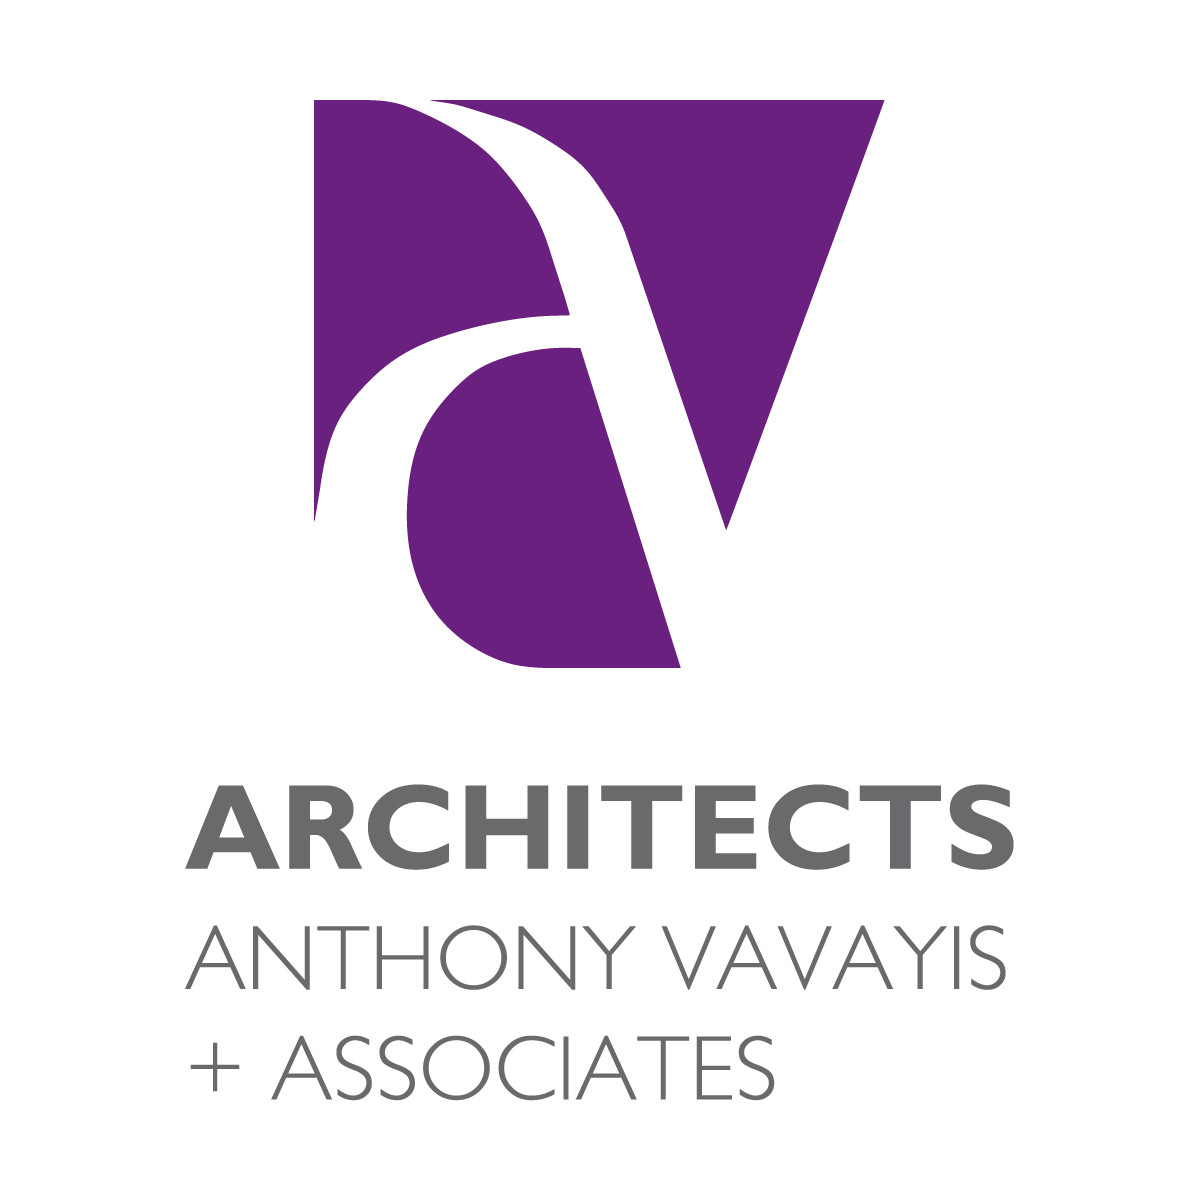 Anthony Vavayis & Associates